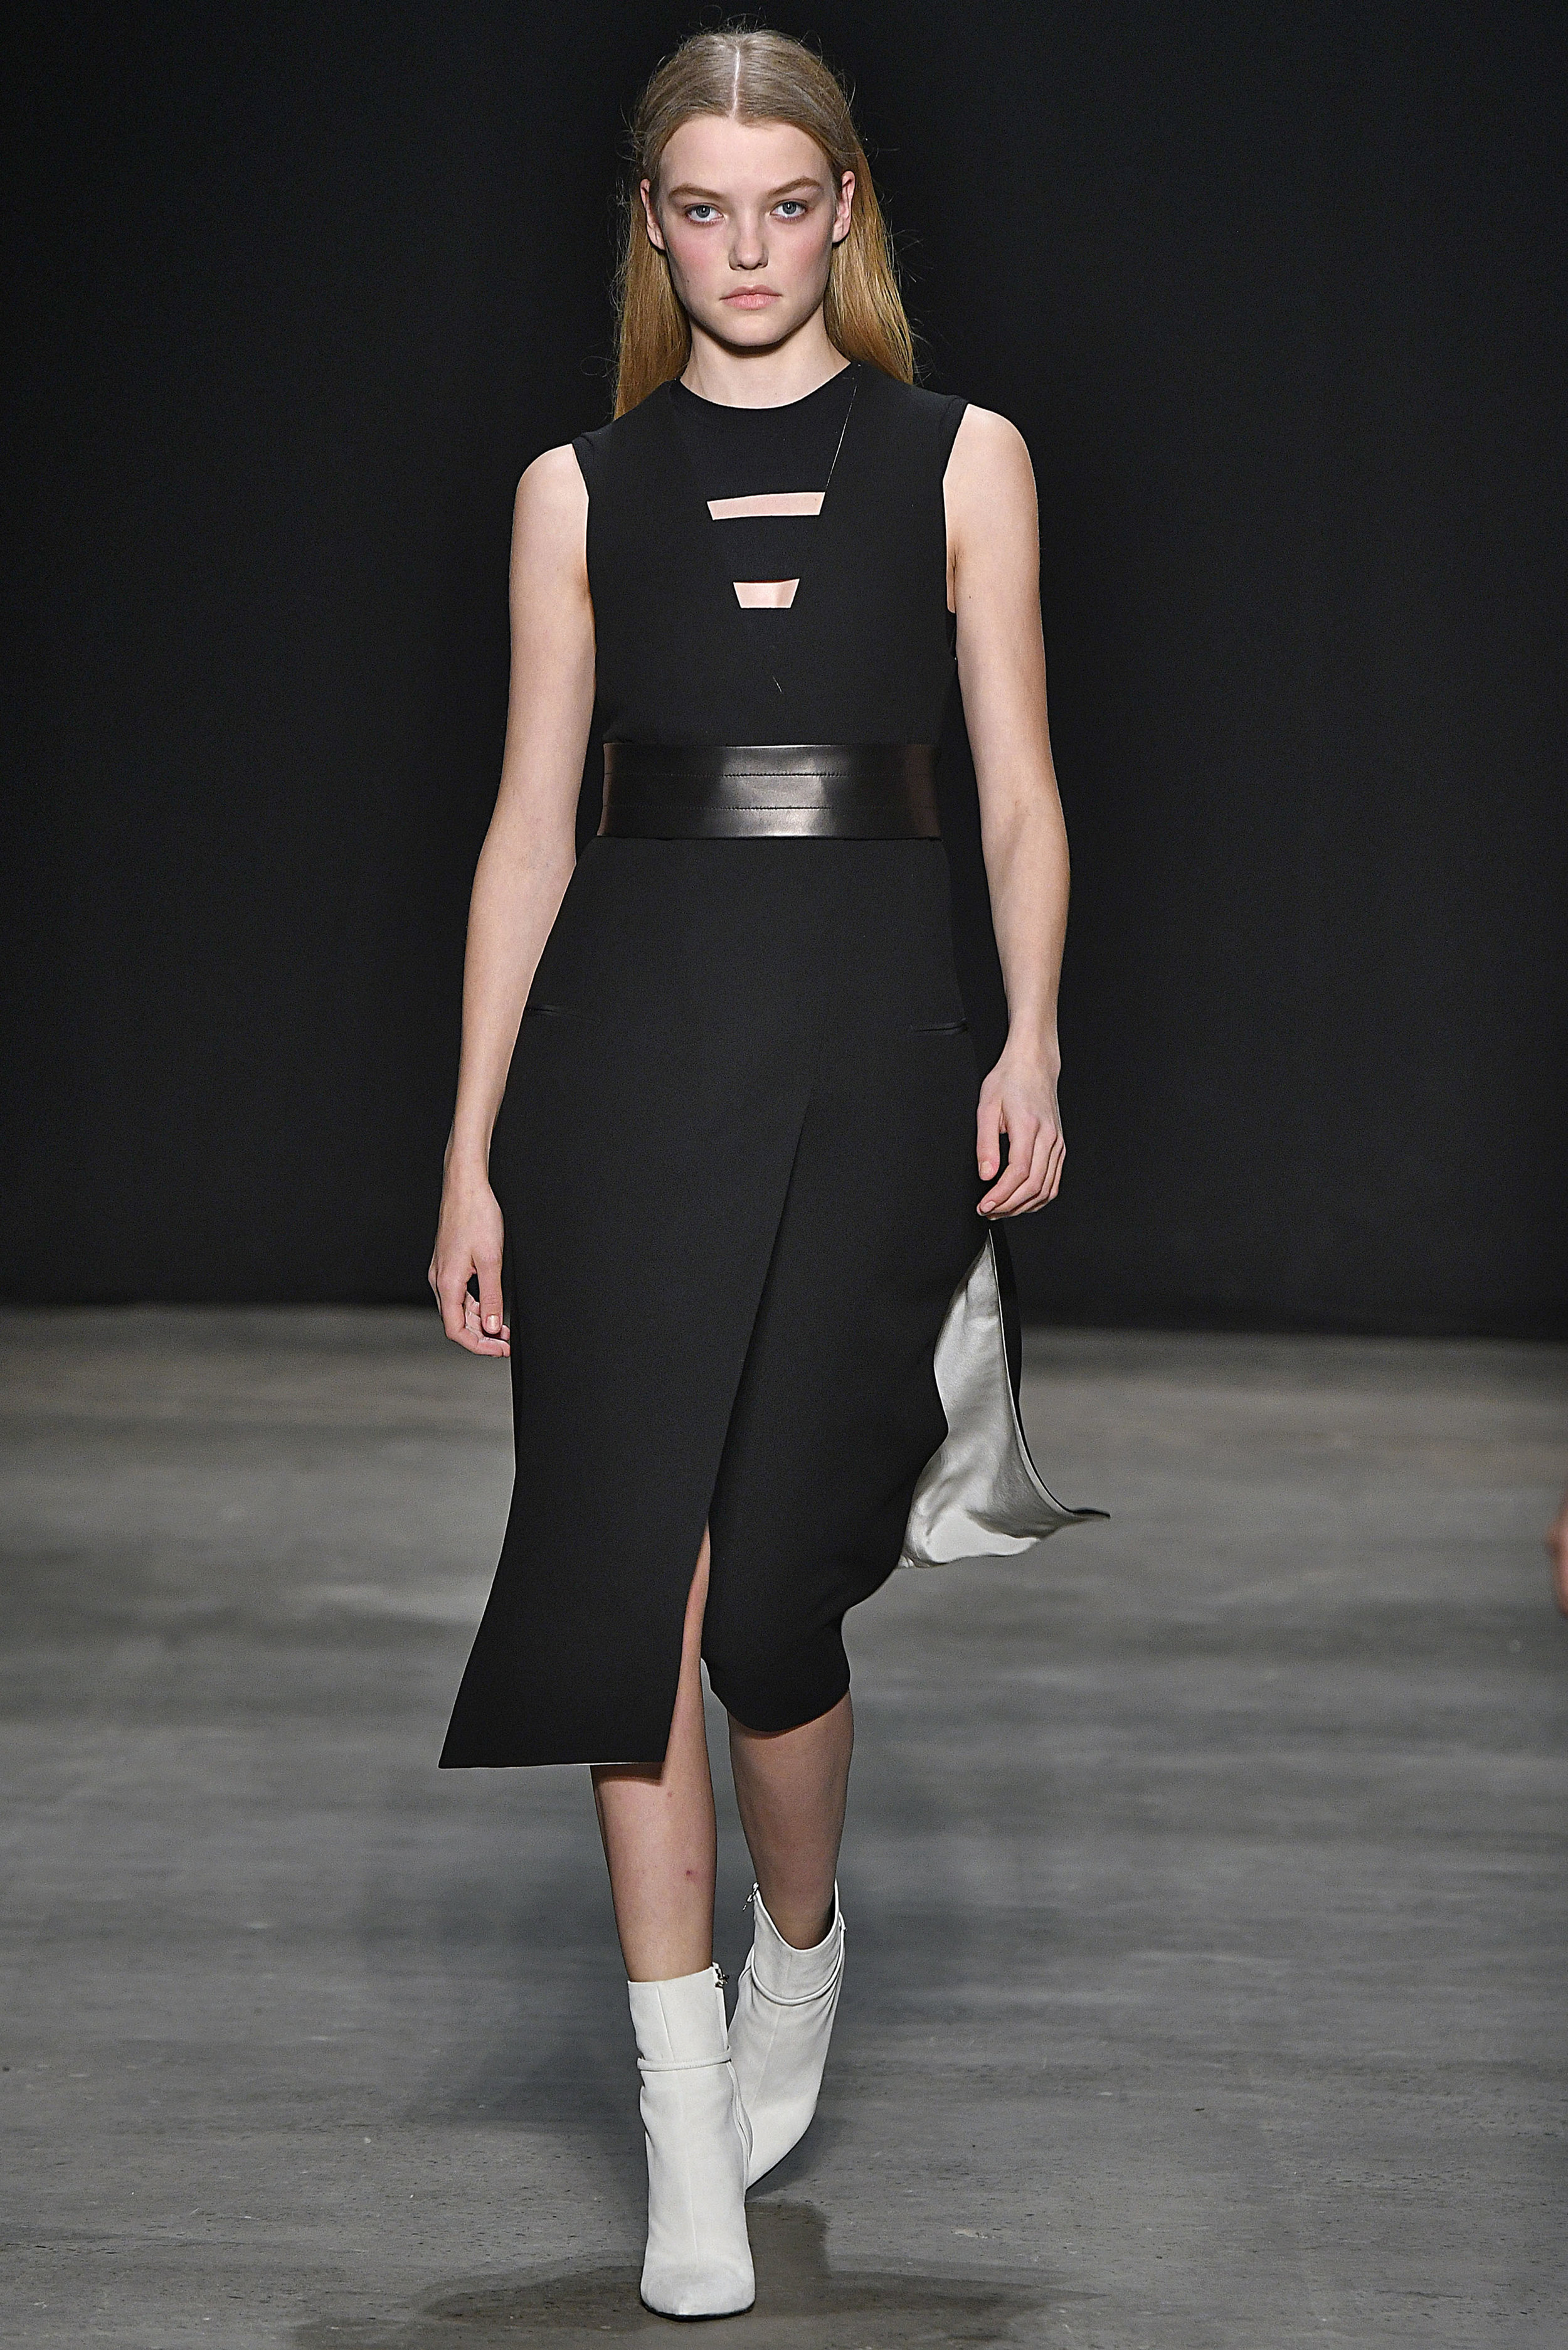 Narciso Rodriguez Fall 2017 collection. Black wool gauze vest dress with black double knit band top.